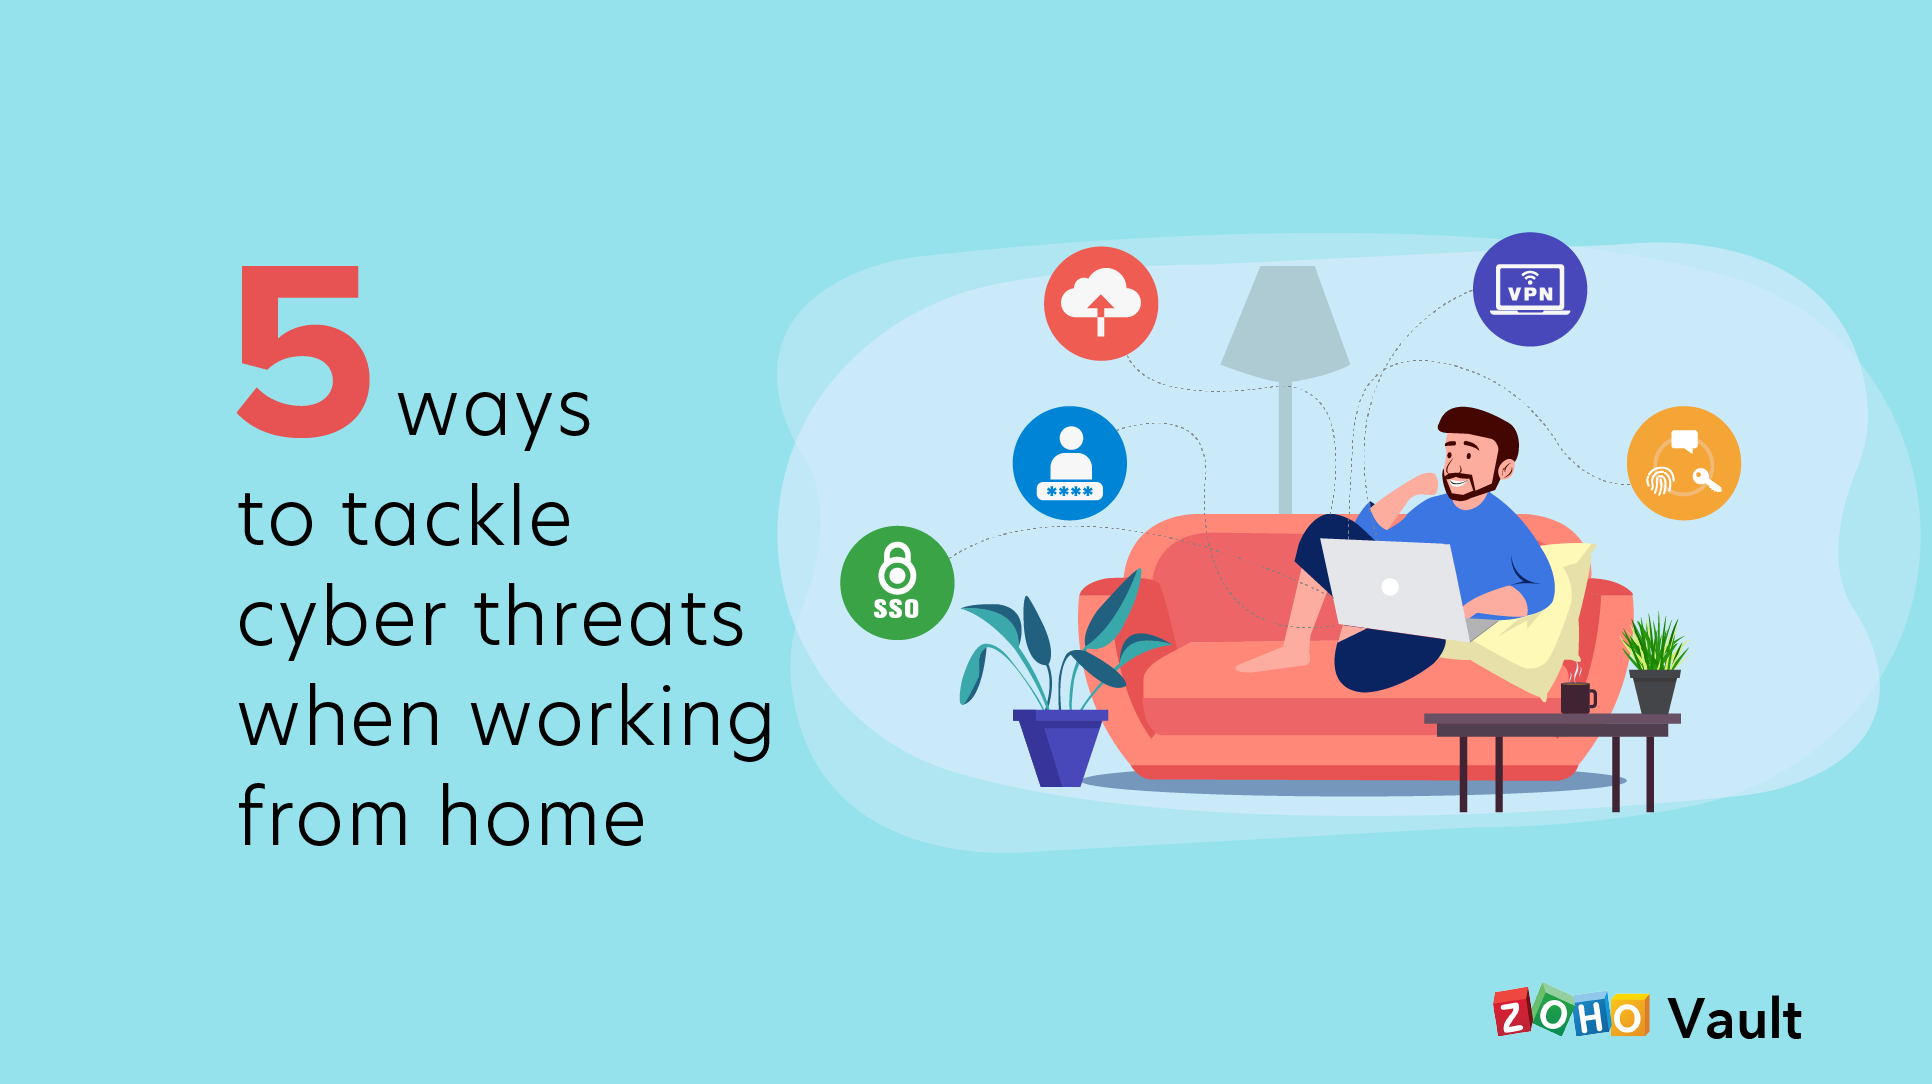 5 ways totackle cyber threats when working from home